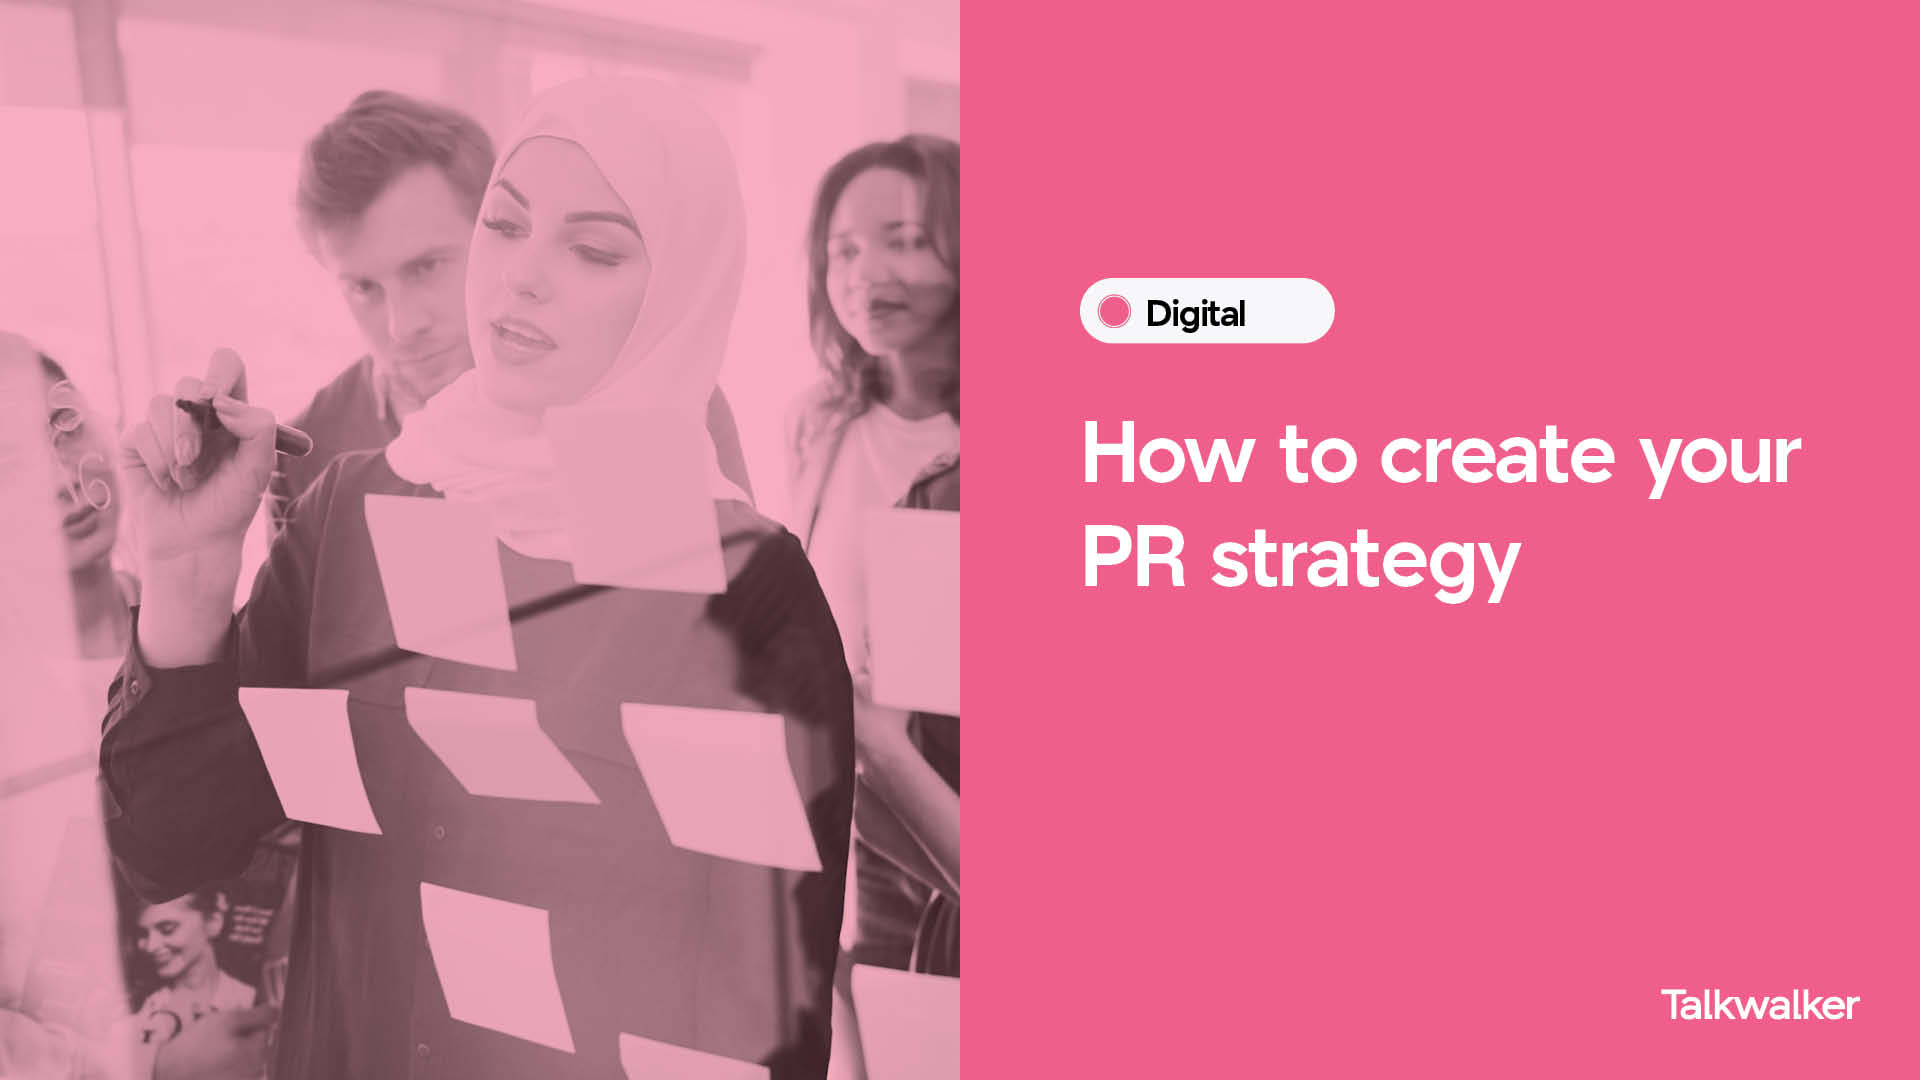 How to create your PR strategy - people stood in front of a glass wall, with post it notes covering